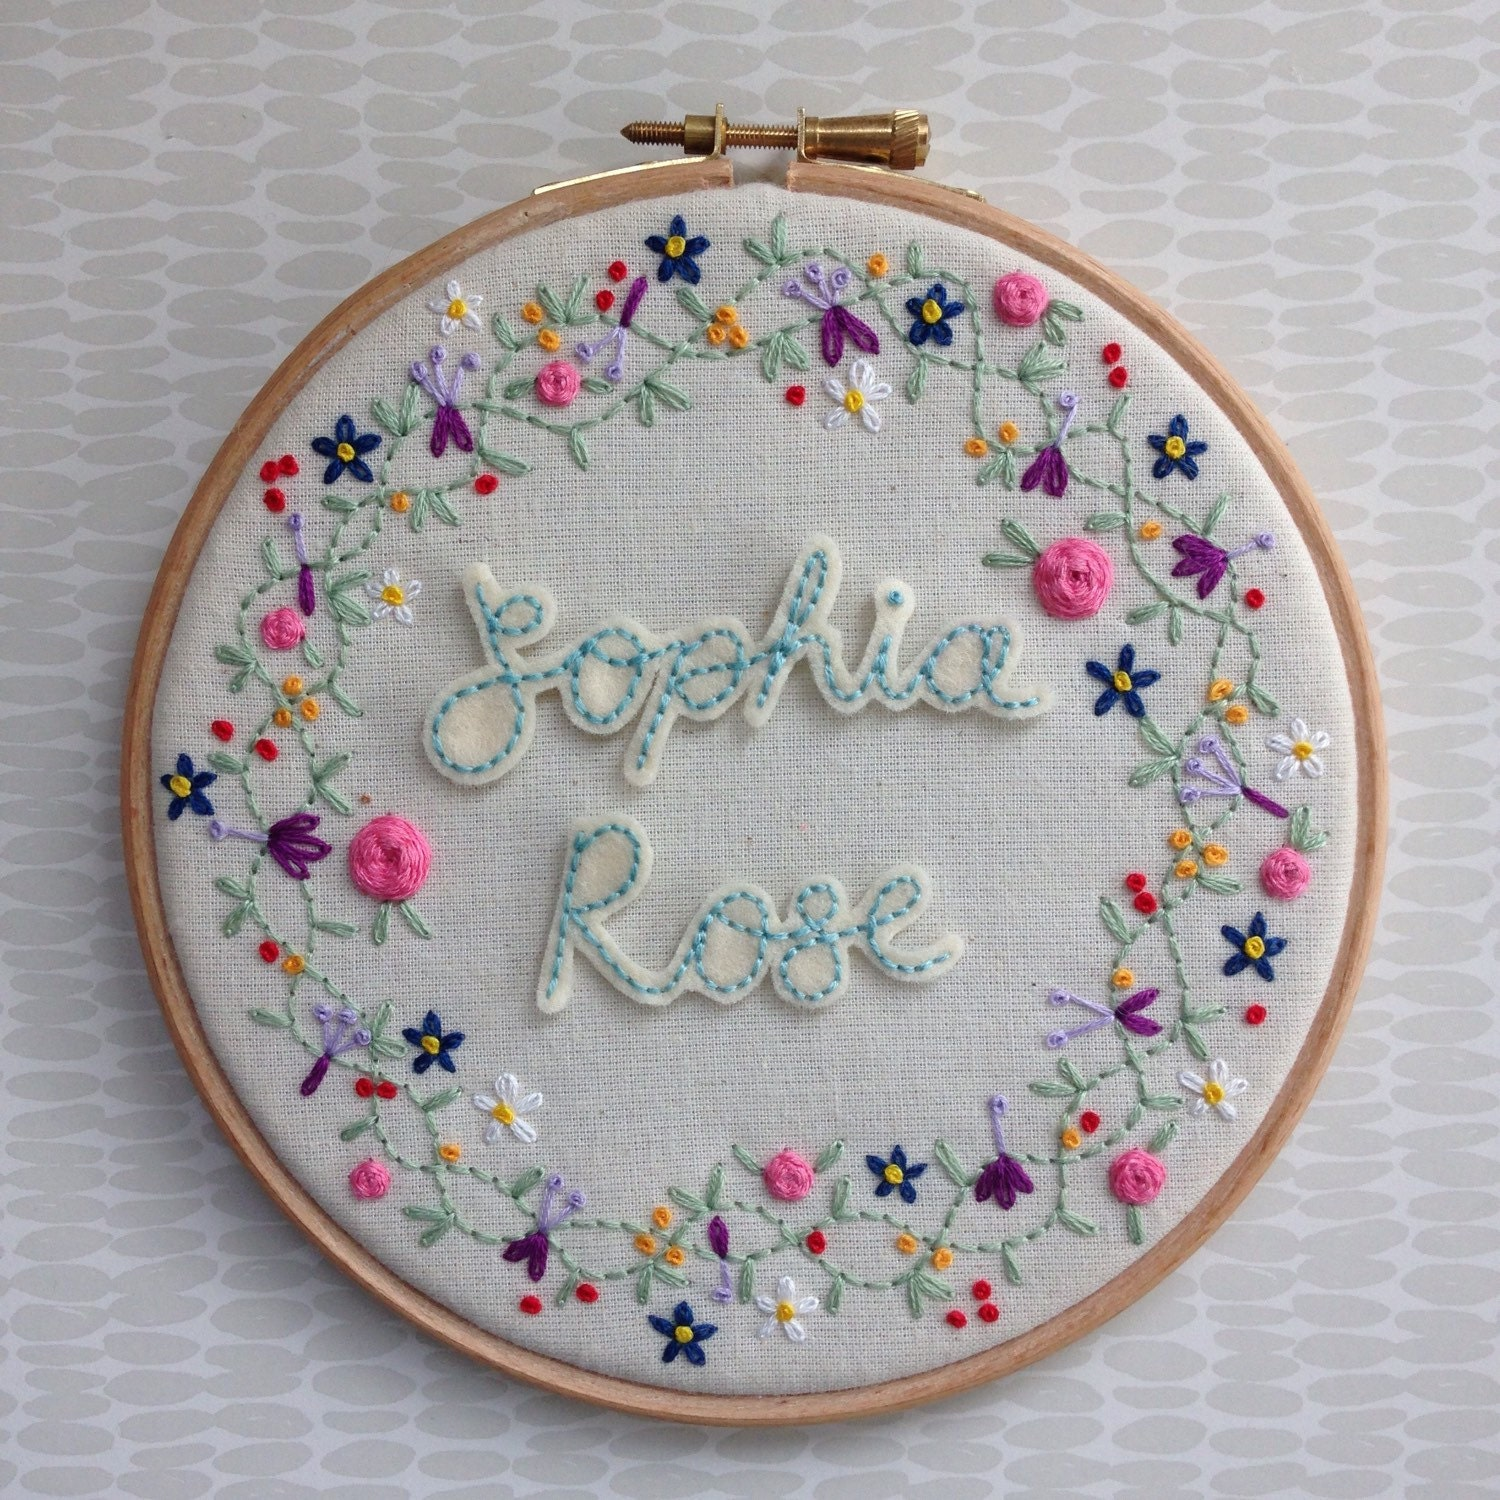 Hand embroidered floral embroidery hoop personalised name